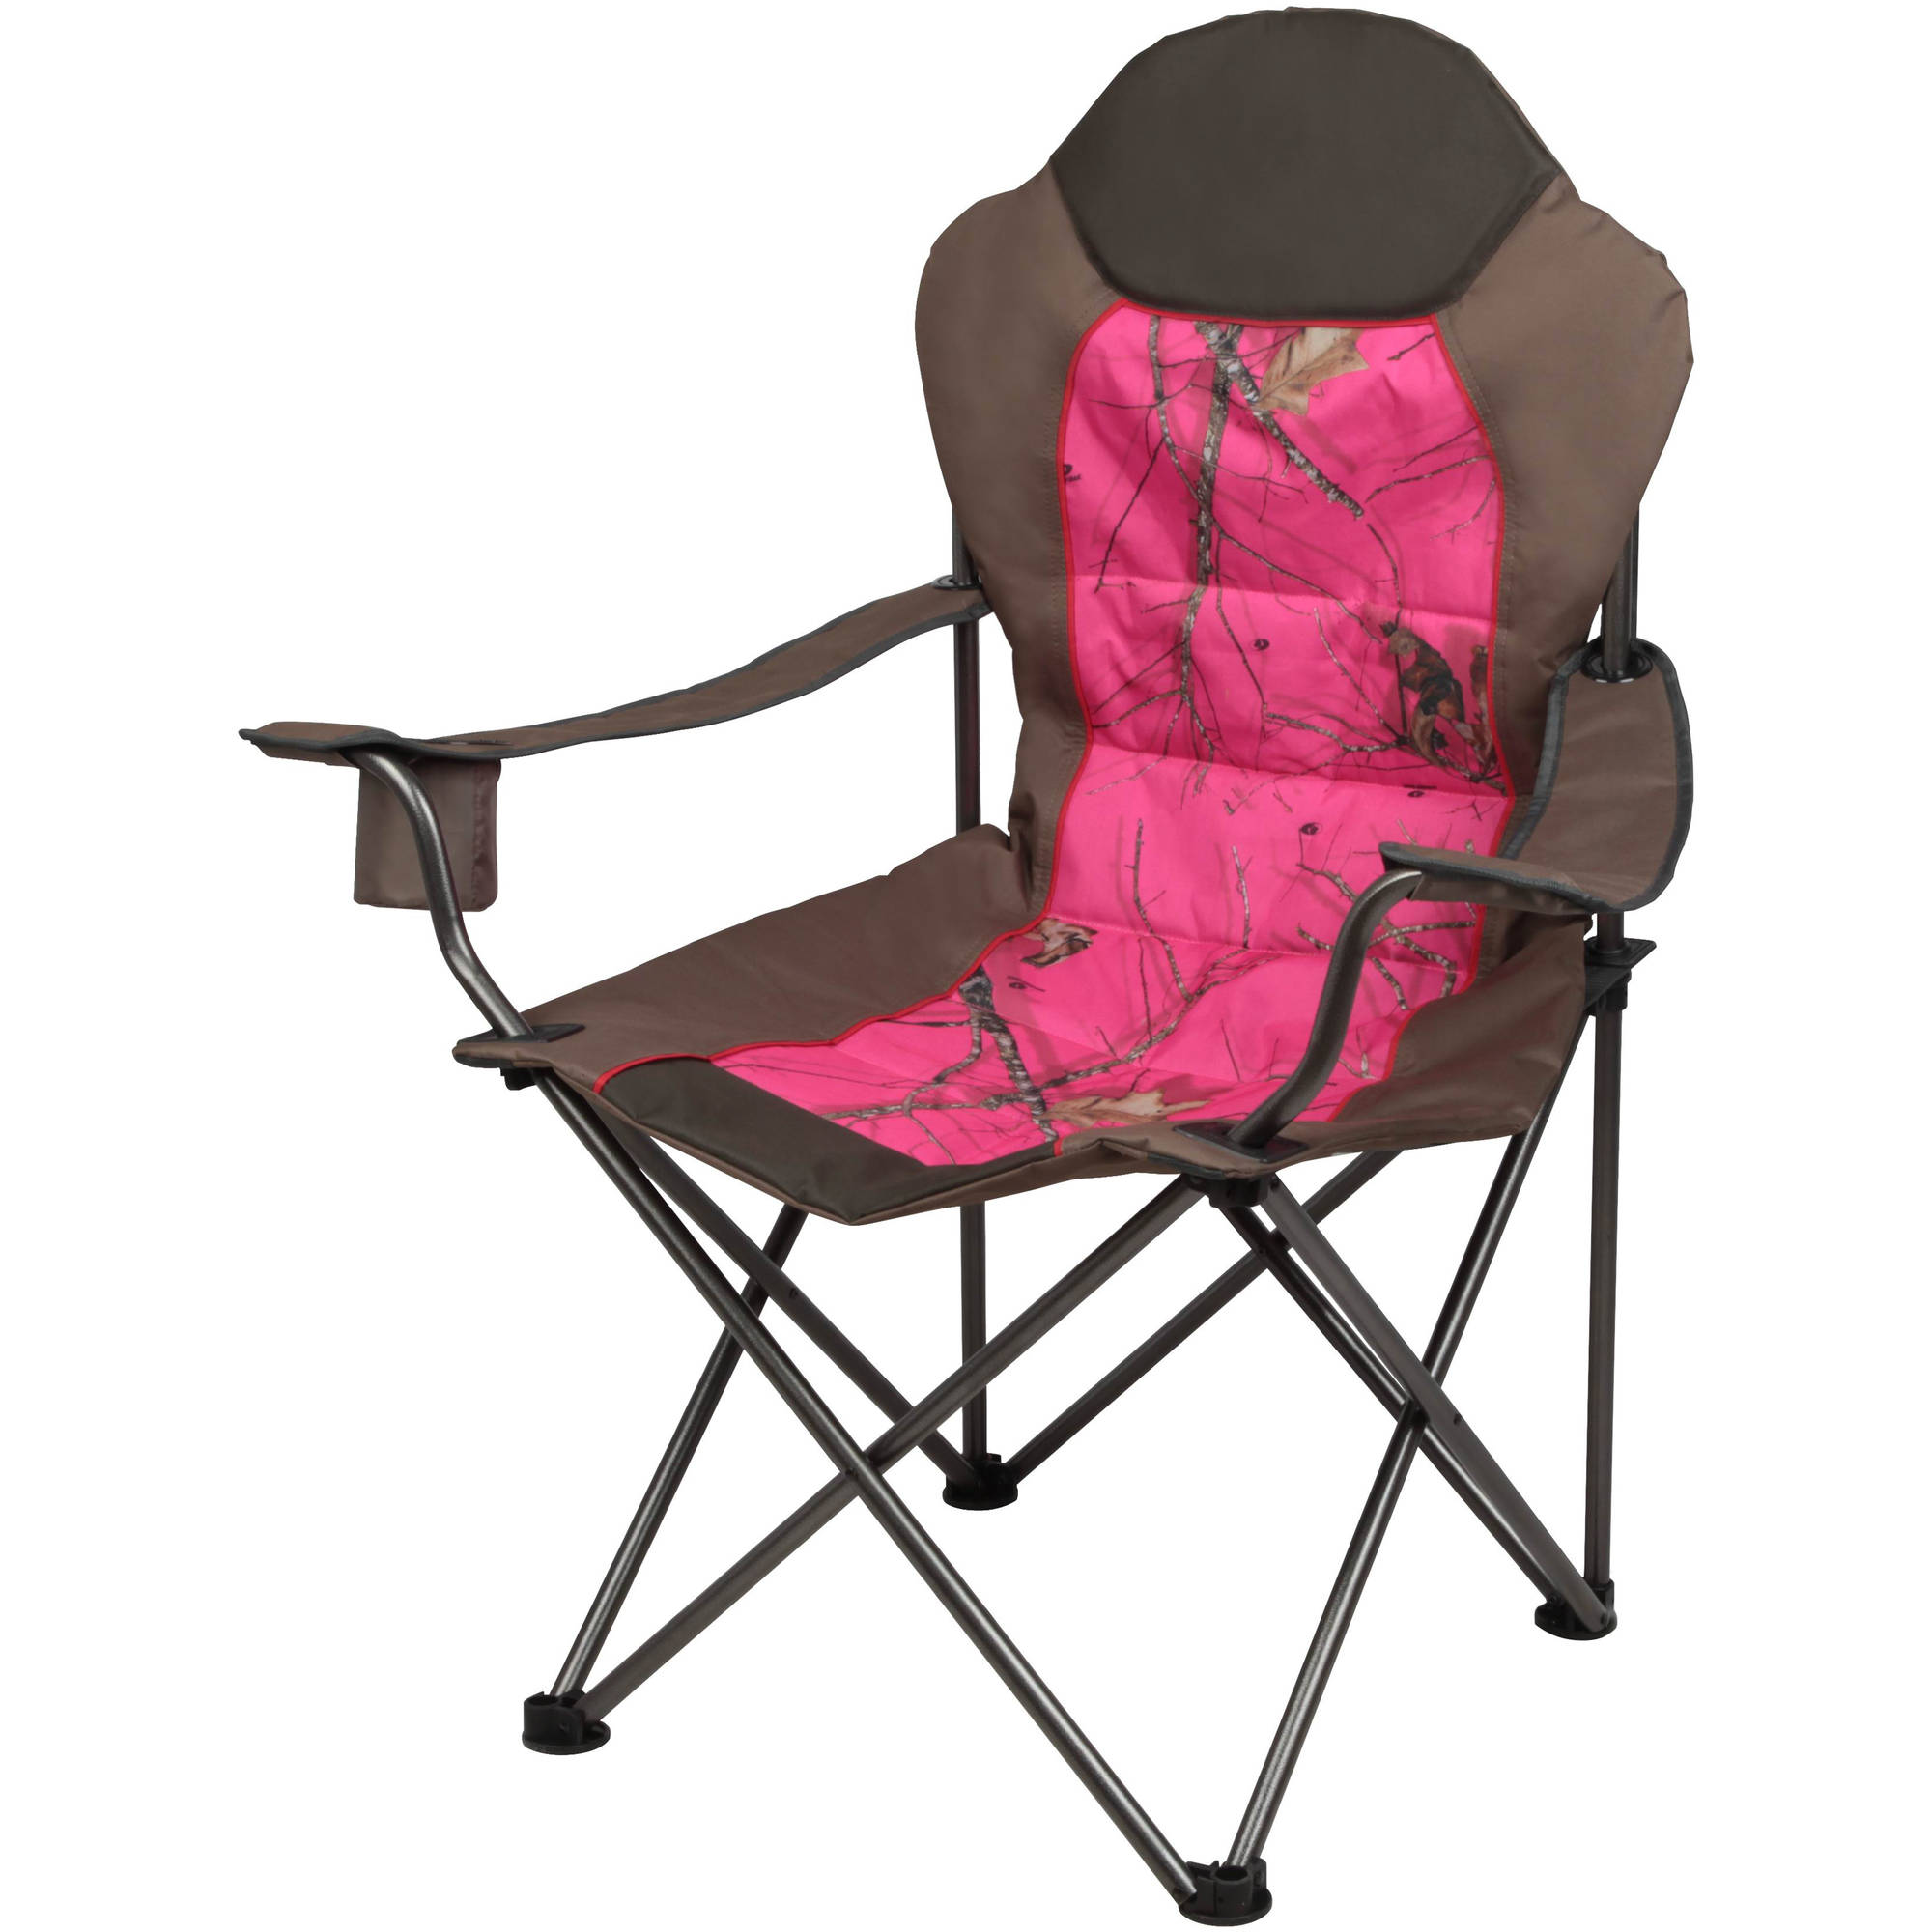 Attirant Mossy Oak Outfitter Deluxe Chair, Pink   Walmart.com